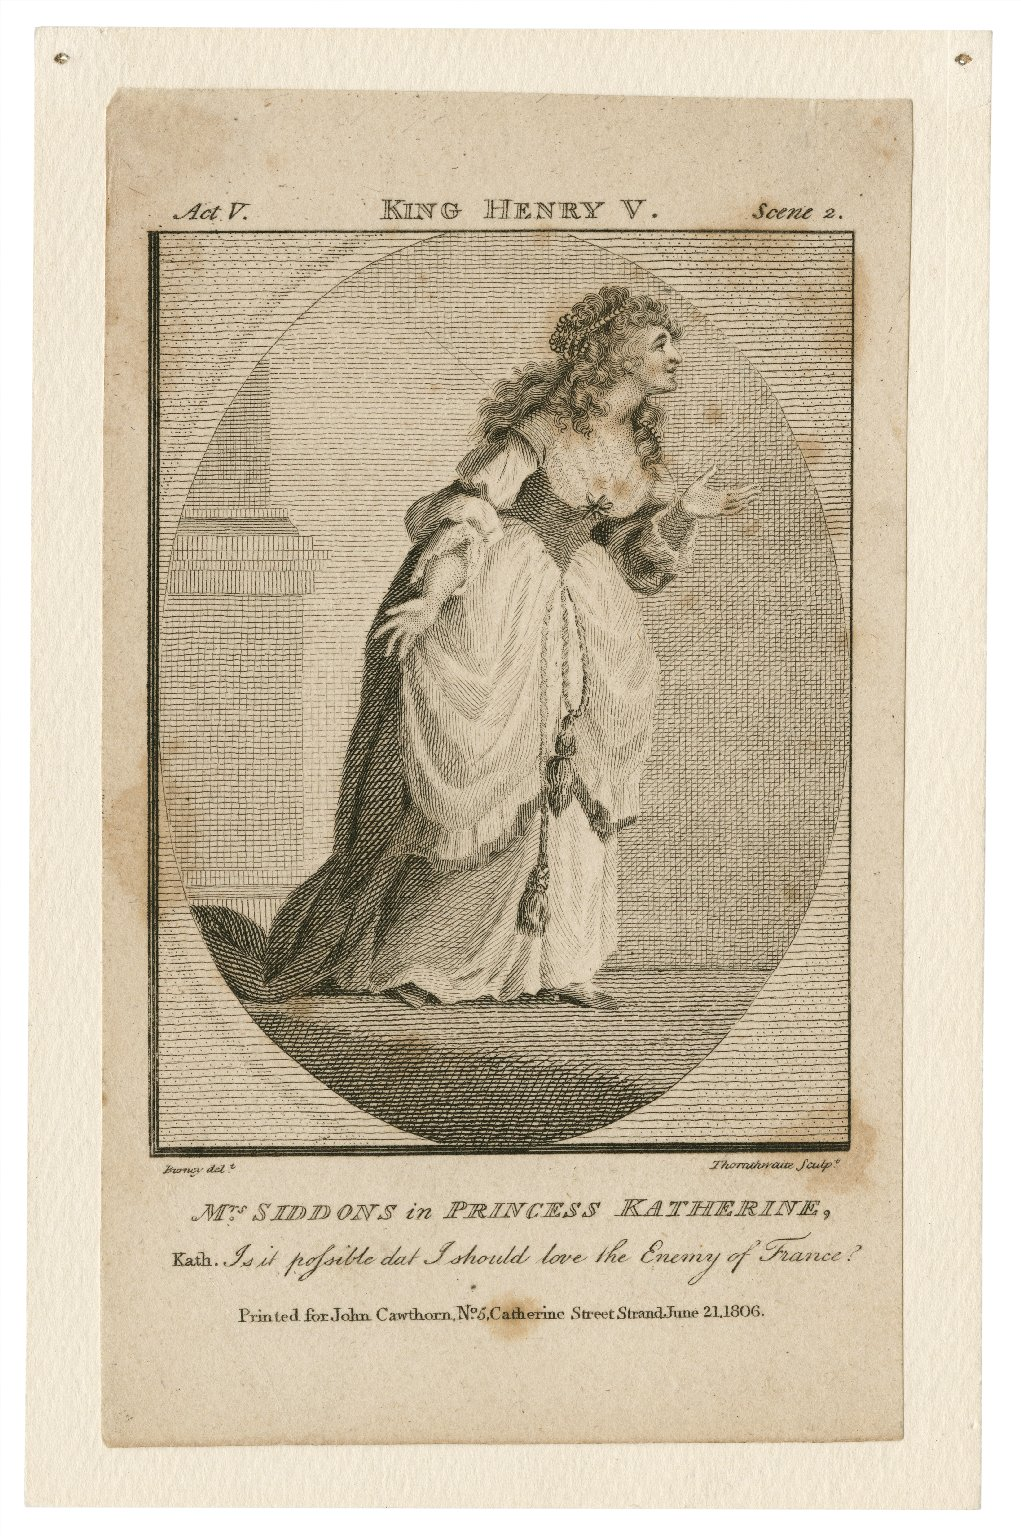 Mrs. Siddons in Princess Katherine, Kath., is it possible that I should love the enemy of France? Act V, Scene 2, [in Shakespeare's] King Henry V [graphic] / Burney, delt. ; Thornthwaite, sculpt.